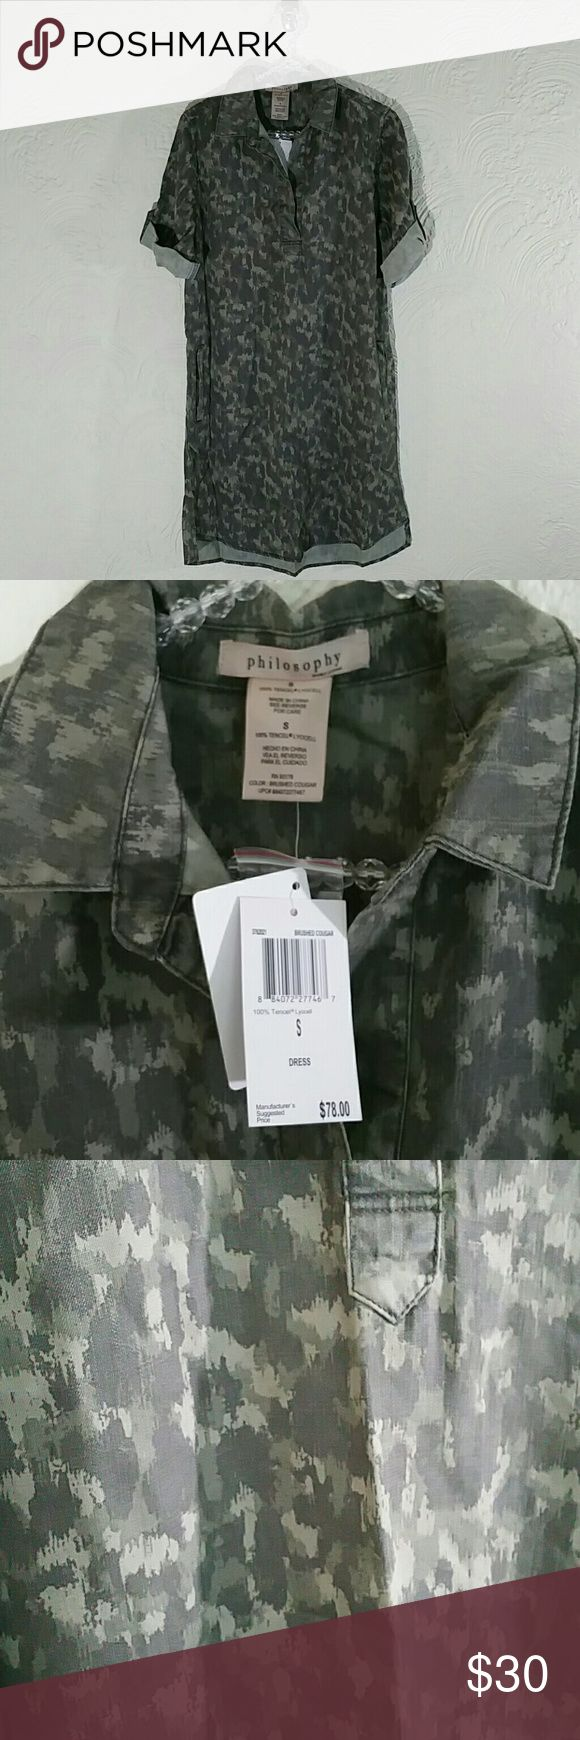 """Philosophy Brushed Cougar Camouflage Shirt Dress So stylish and on trend with its cuffed sleeves and side pockets! Never worn. NWT  Measurements are taken flat and are approximate  Pit to Pit 17.5""""  Length 28.5"""" front / 36"""" back  100116550sc 01Bb  NO TRADES   Ships fast from a smoke and pet free home. Philosophy Dresses High Low"""